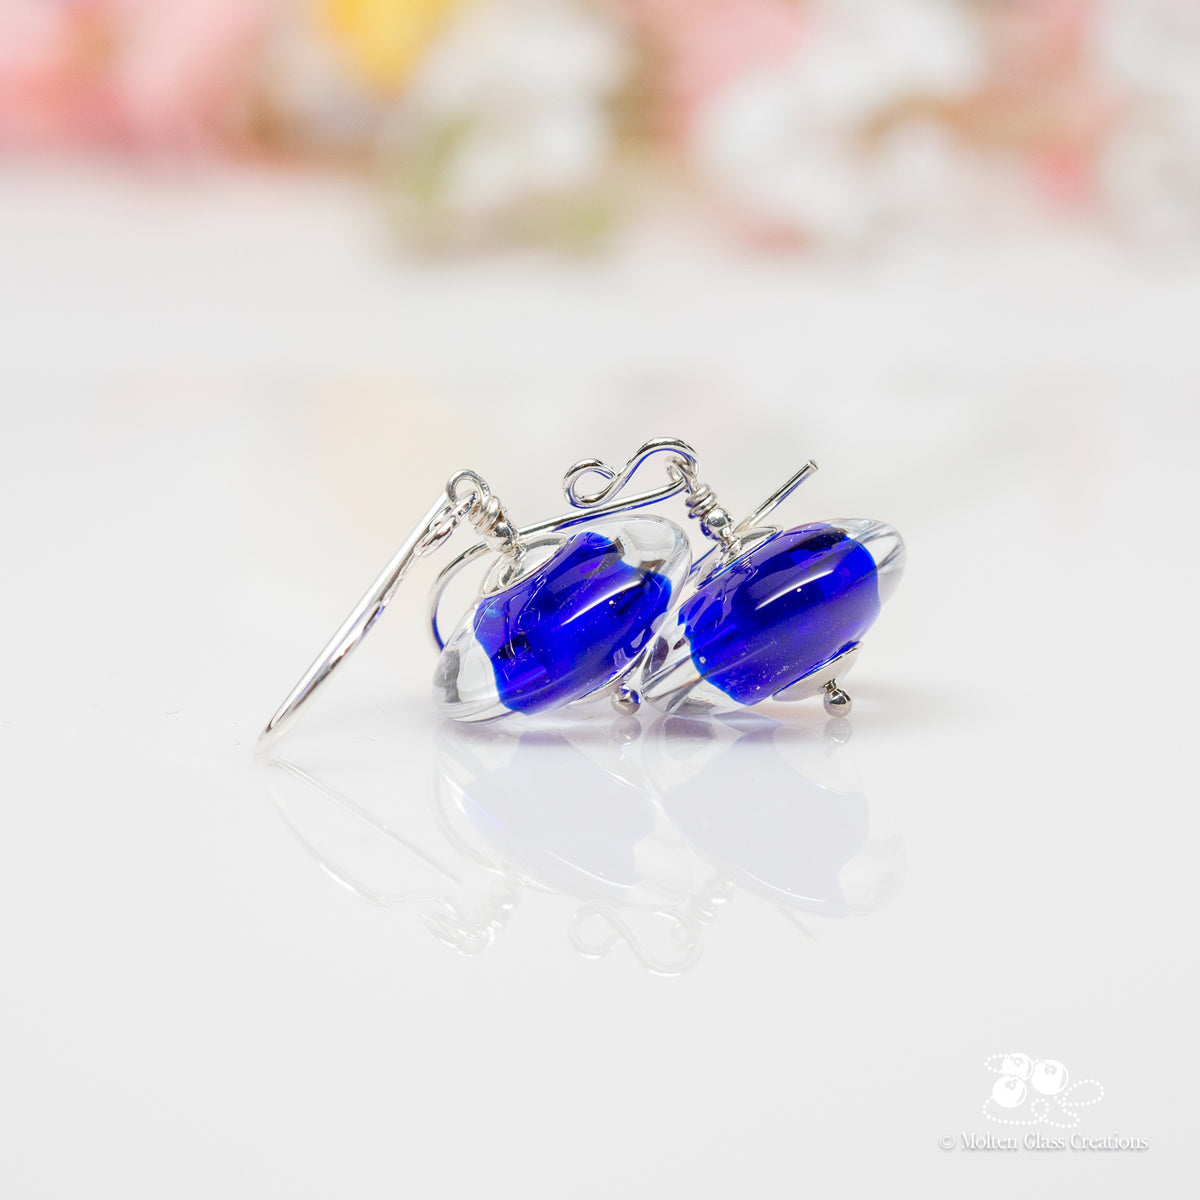 Cobalt Blue Disc Earrings